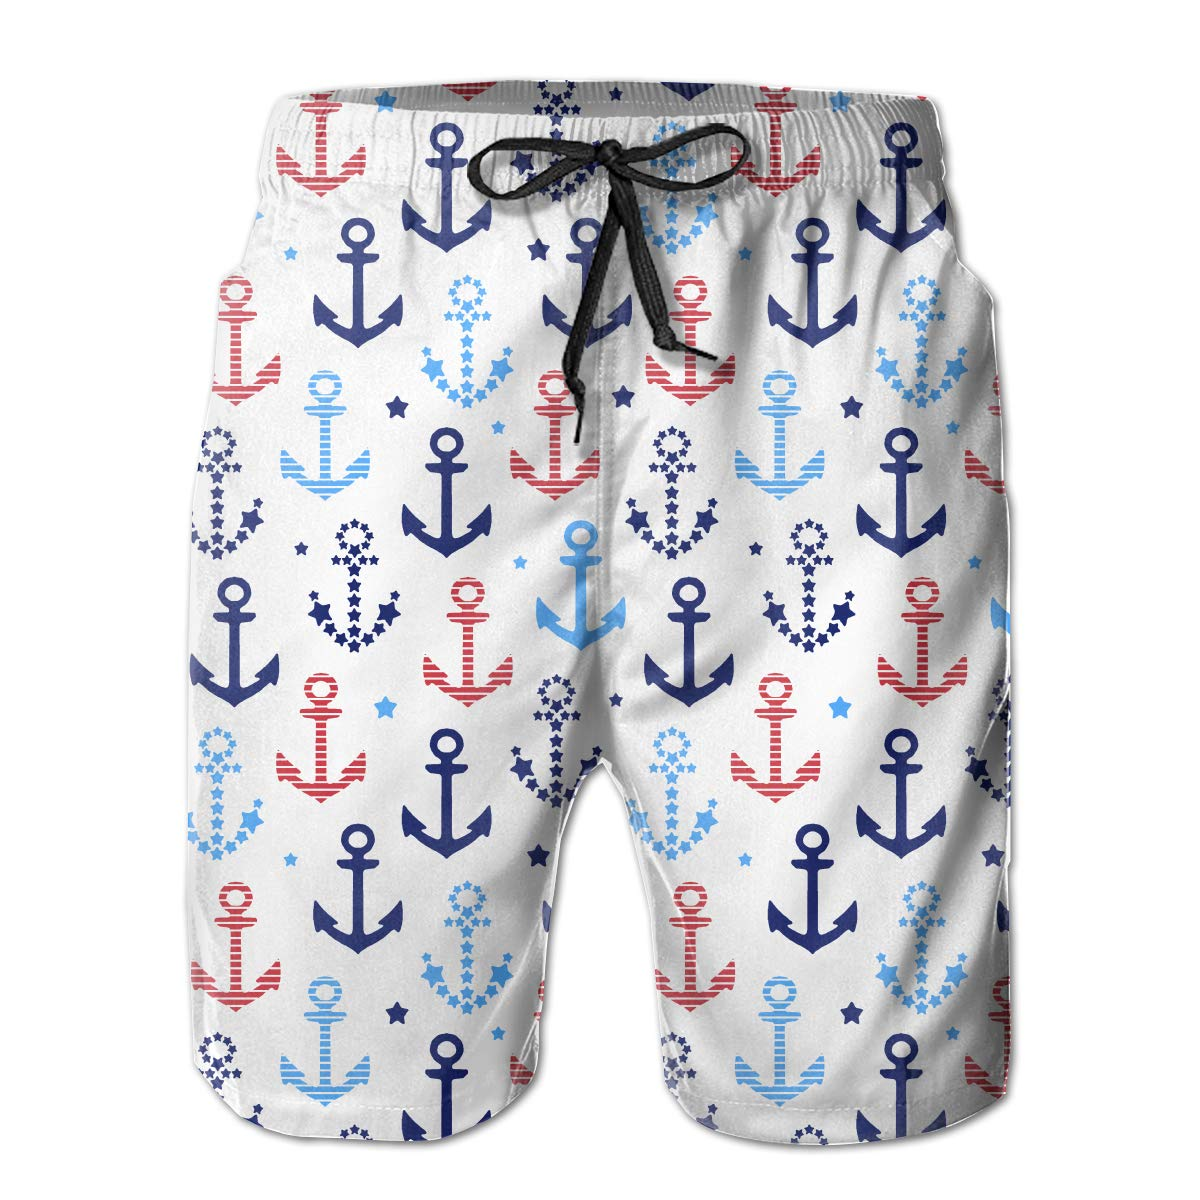 Mens Swim Trunks Cotton Anchor Quick Dry Beach Board Shorts with Mesh Lining